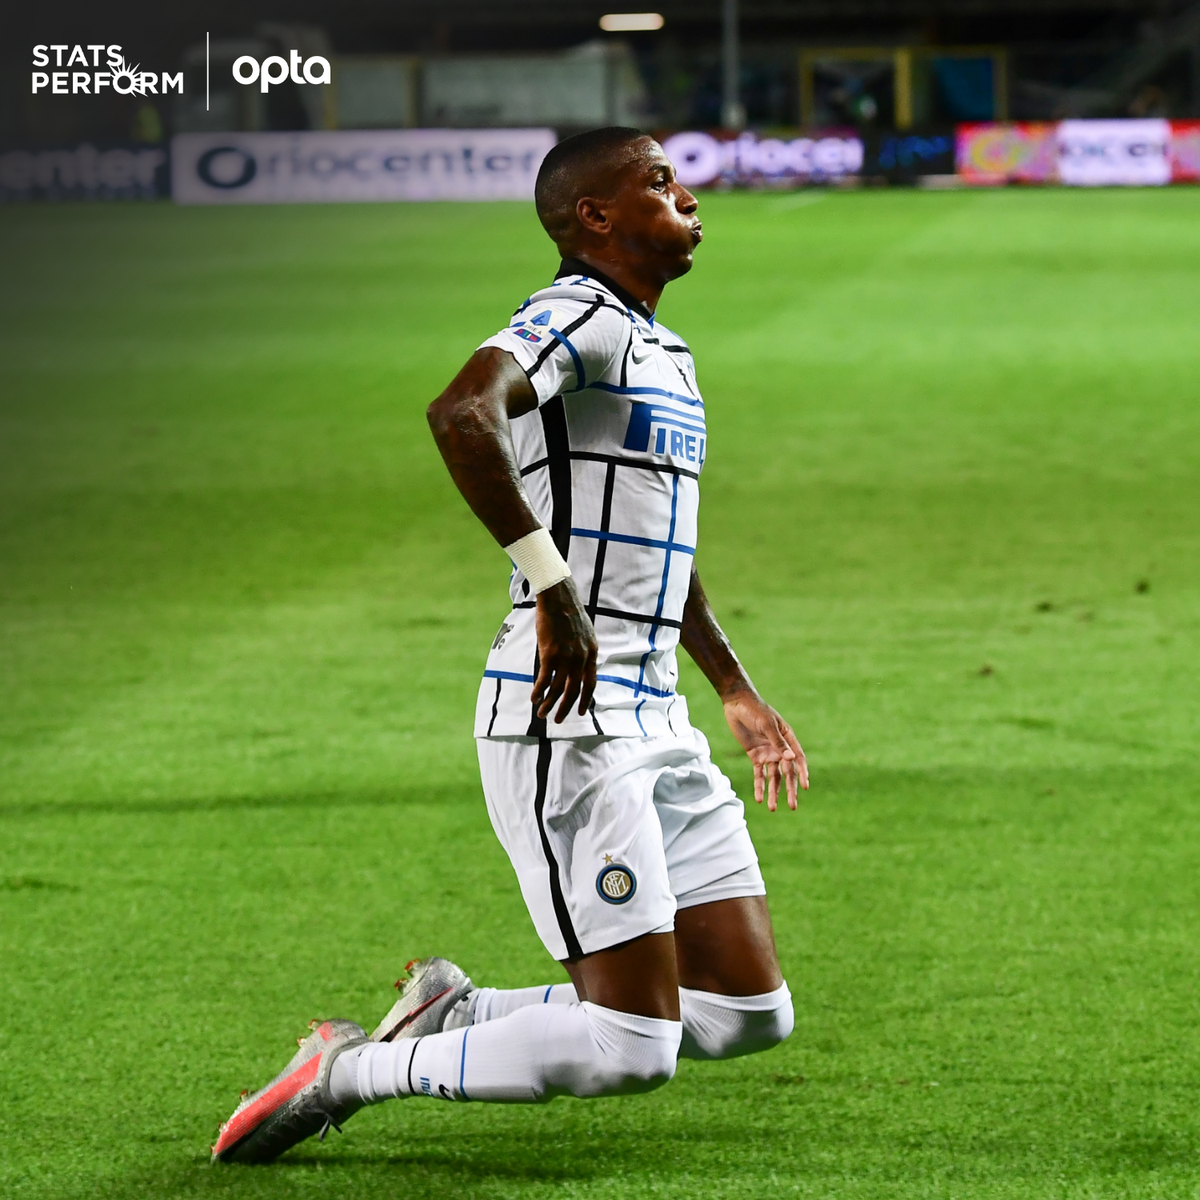 @OptaPaolo's photo on Ashley Young